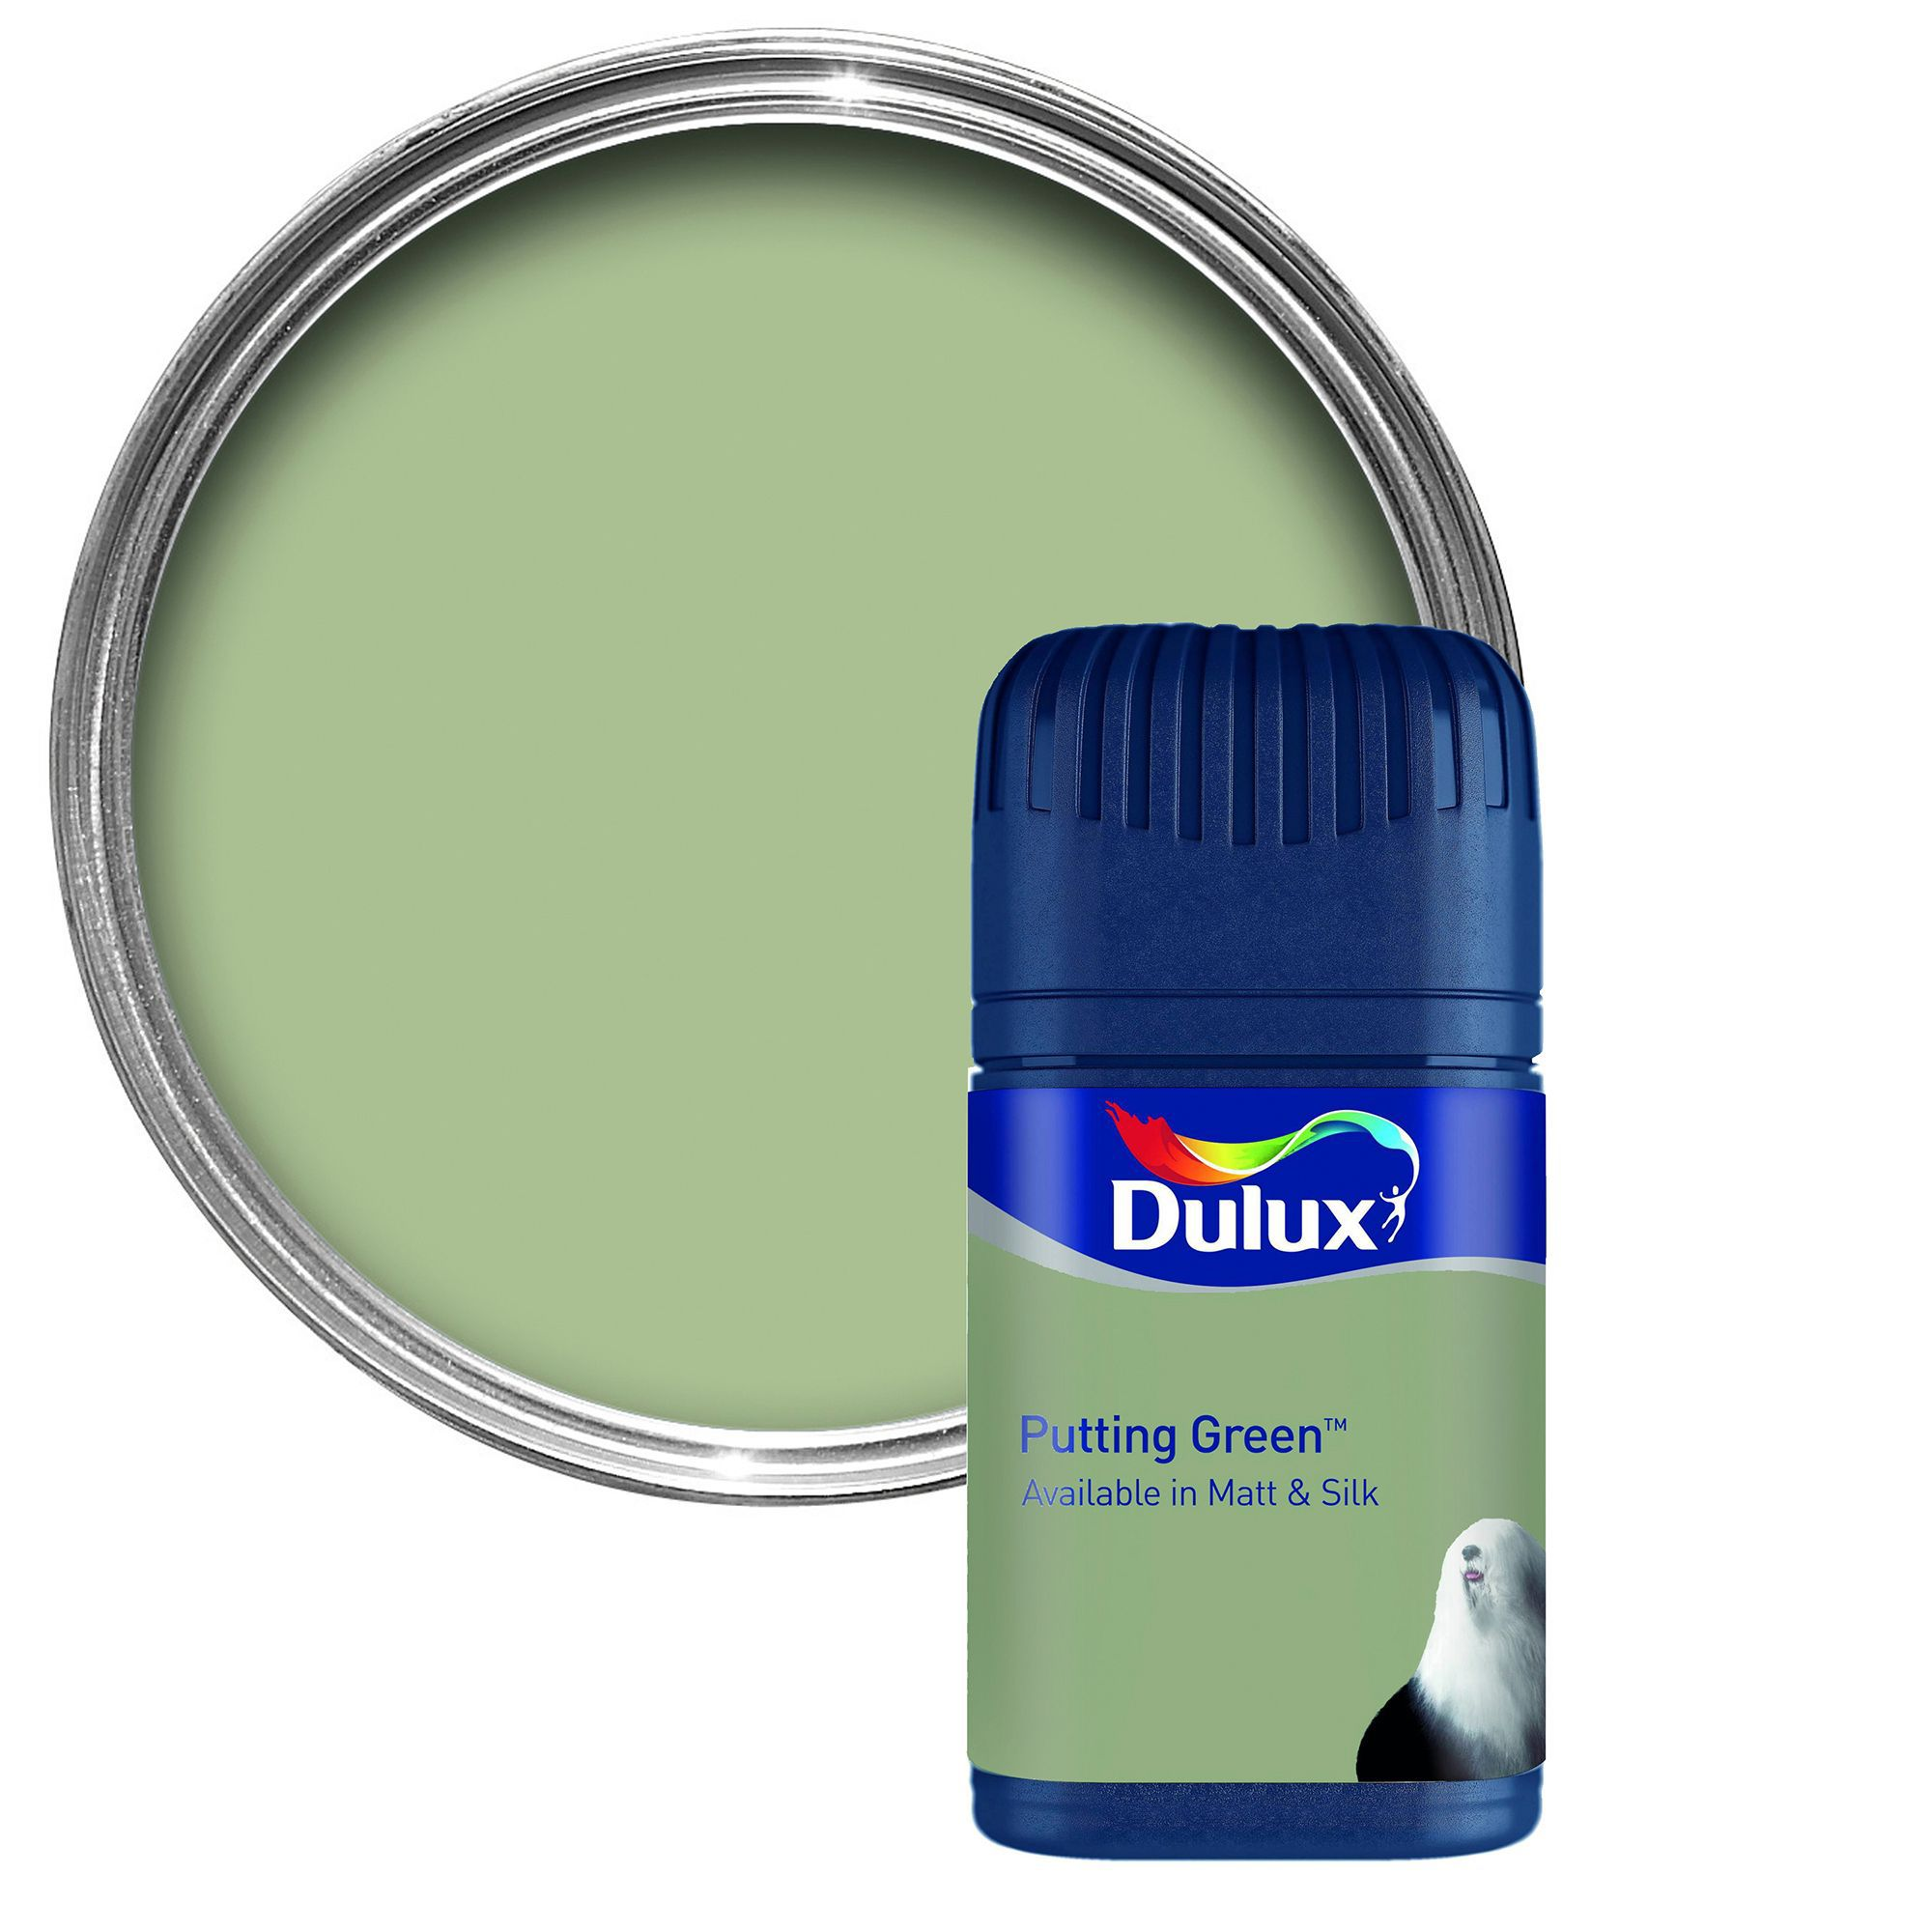 Dulux Tester Putting Green Matt Emulsion Paint Tester Pot